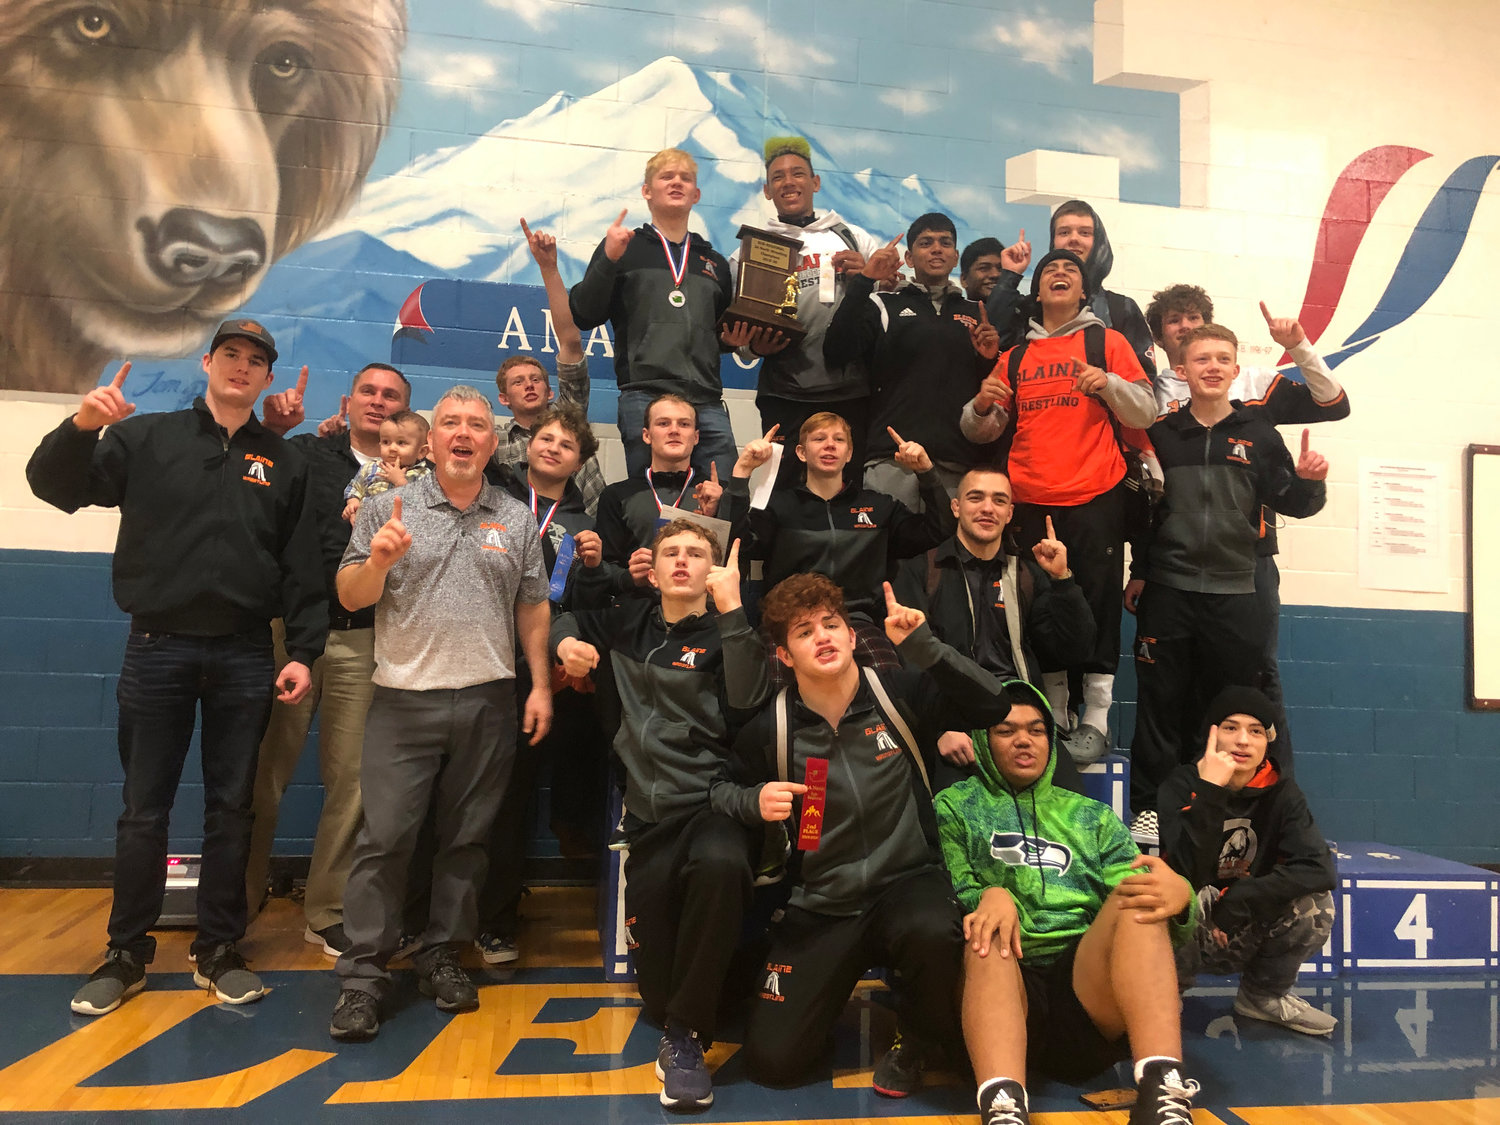 Blaine wrestlers celebrate after winning the Class 2A Sub-Regional wrestling tournament at Sedro-Woolley High School on February 8.